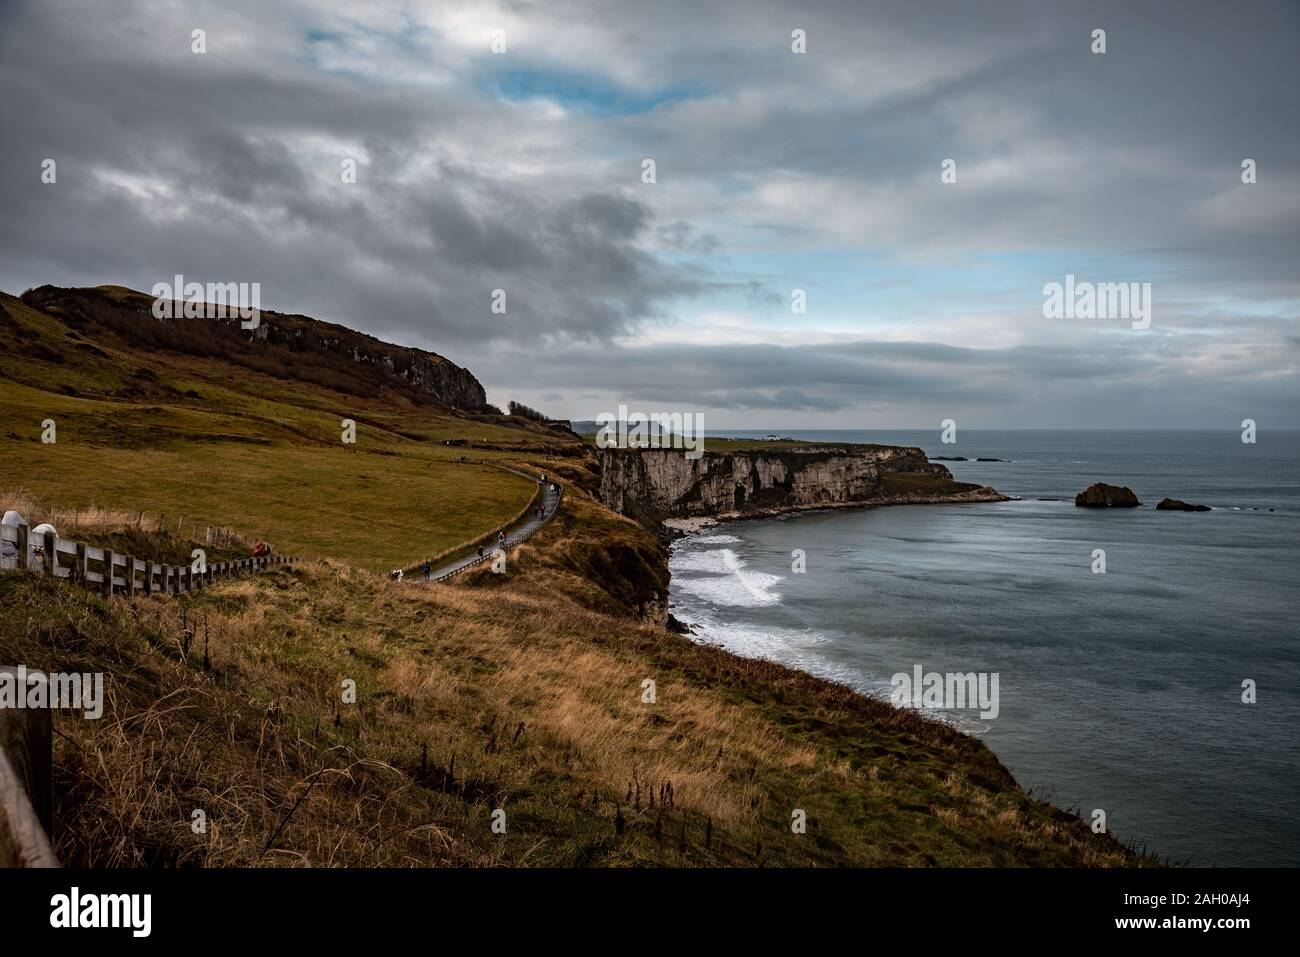 People walking along the coastal pathway during a rainy, cold and cloudy day on the cliffs near Ballintoy in Northern Ireland. Stock Photo